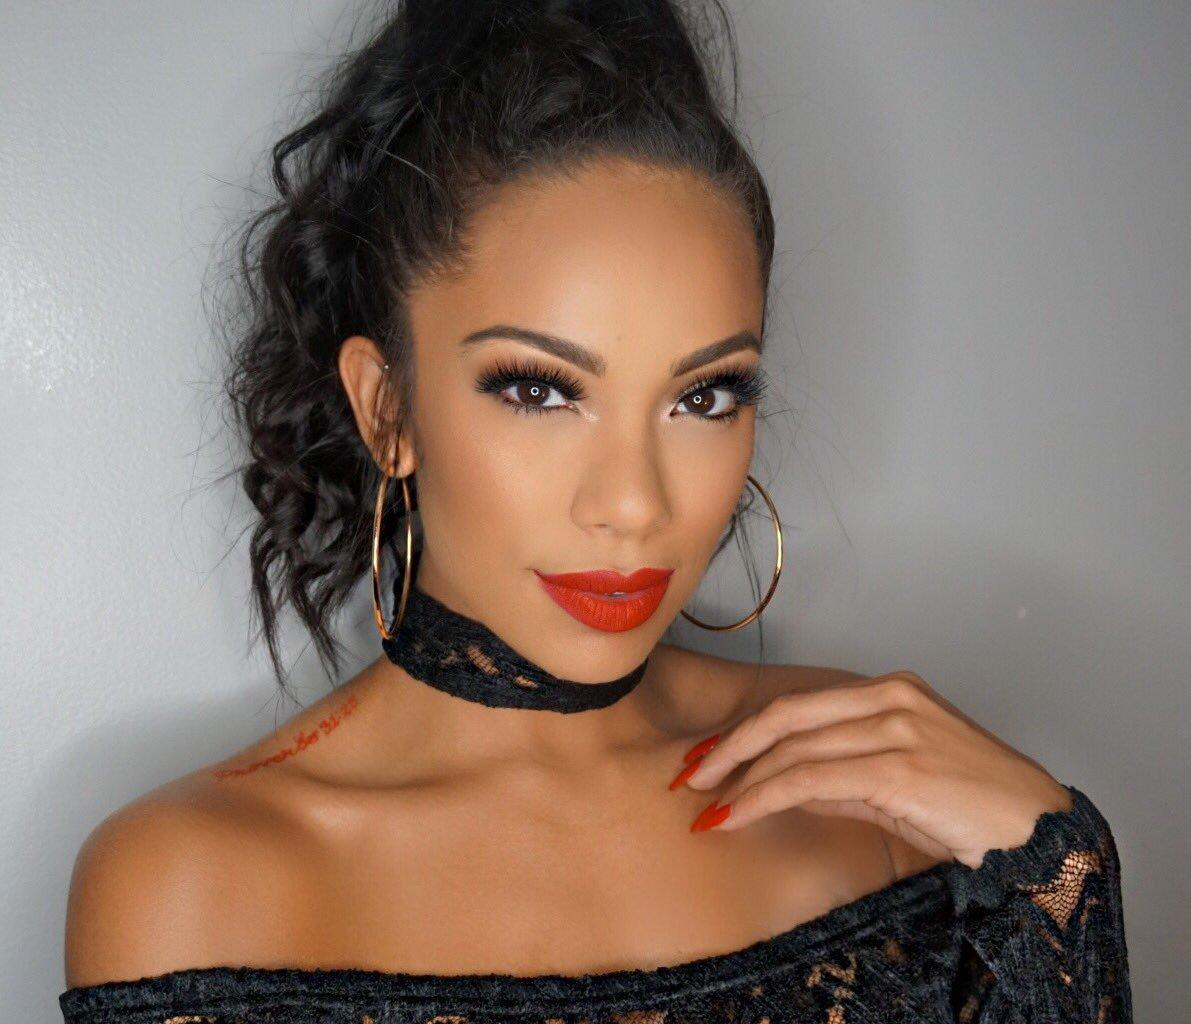 Erica Mena Gets Ready For A Fire 2021 - Check Out The New Photos She Just Dropped